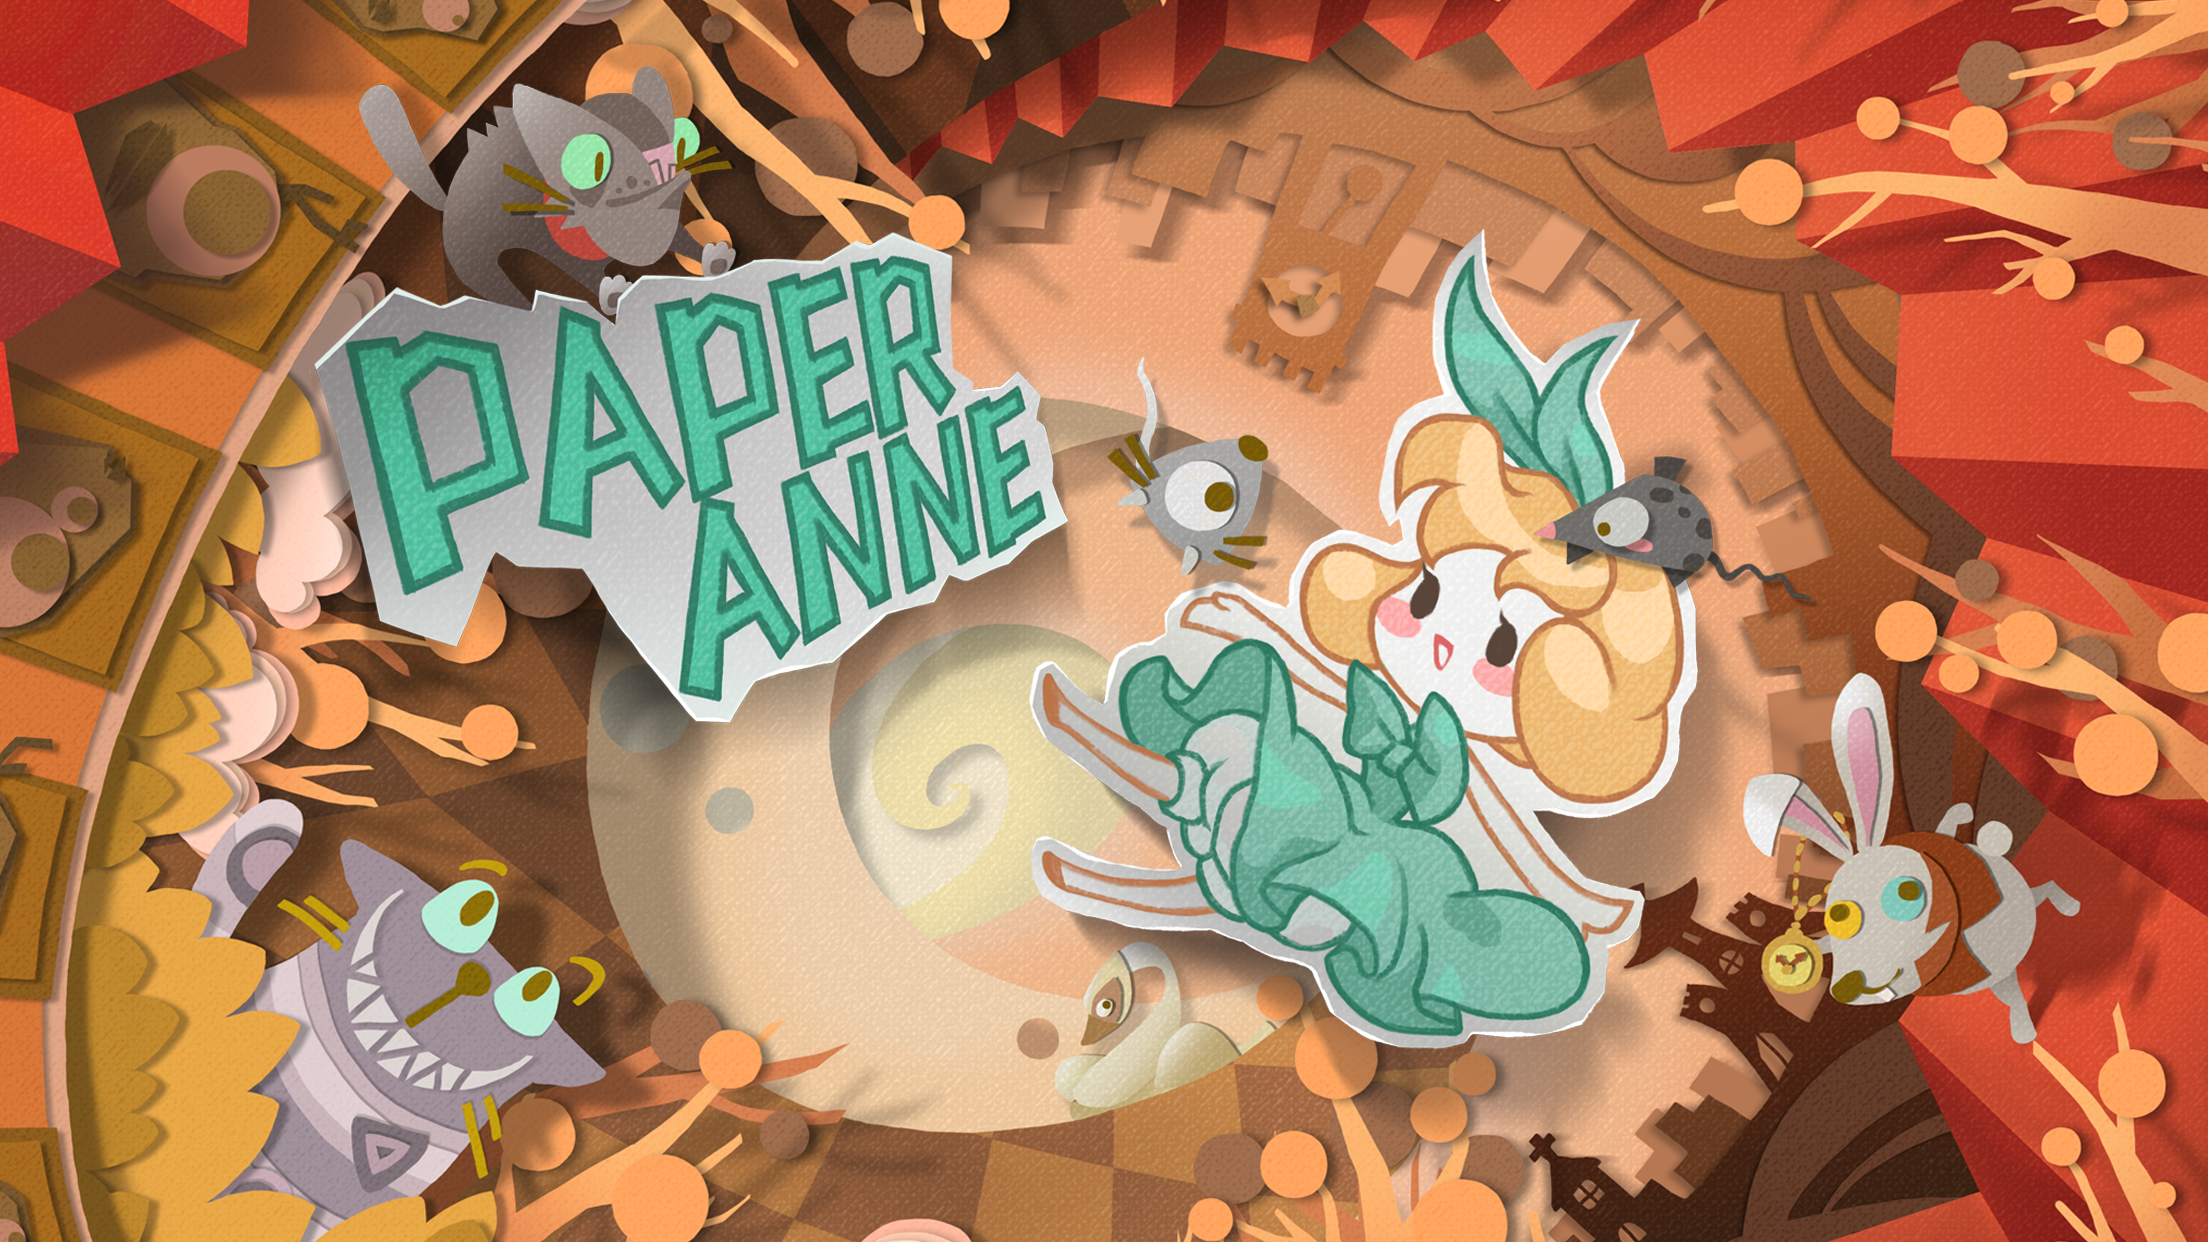 Explore a world of fairytales in PAPER Anne